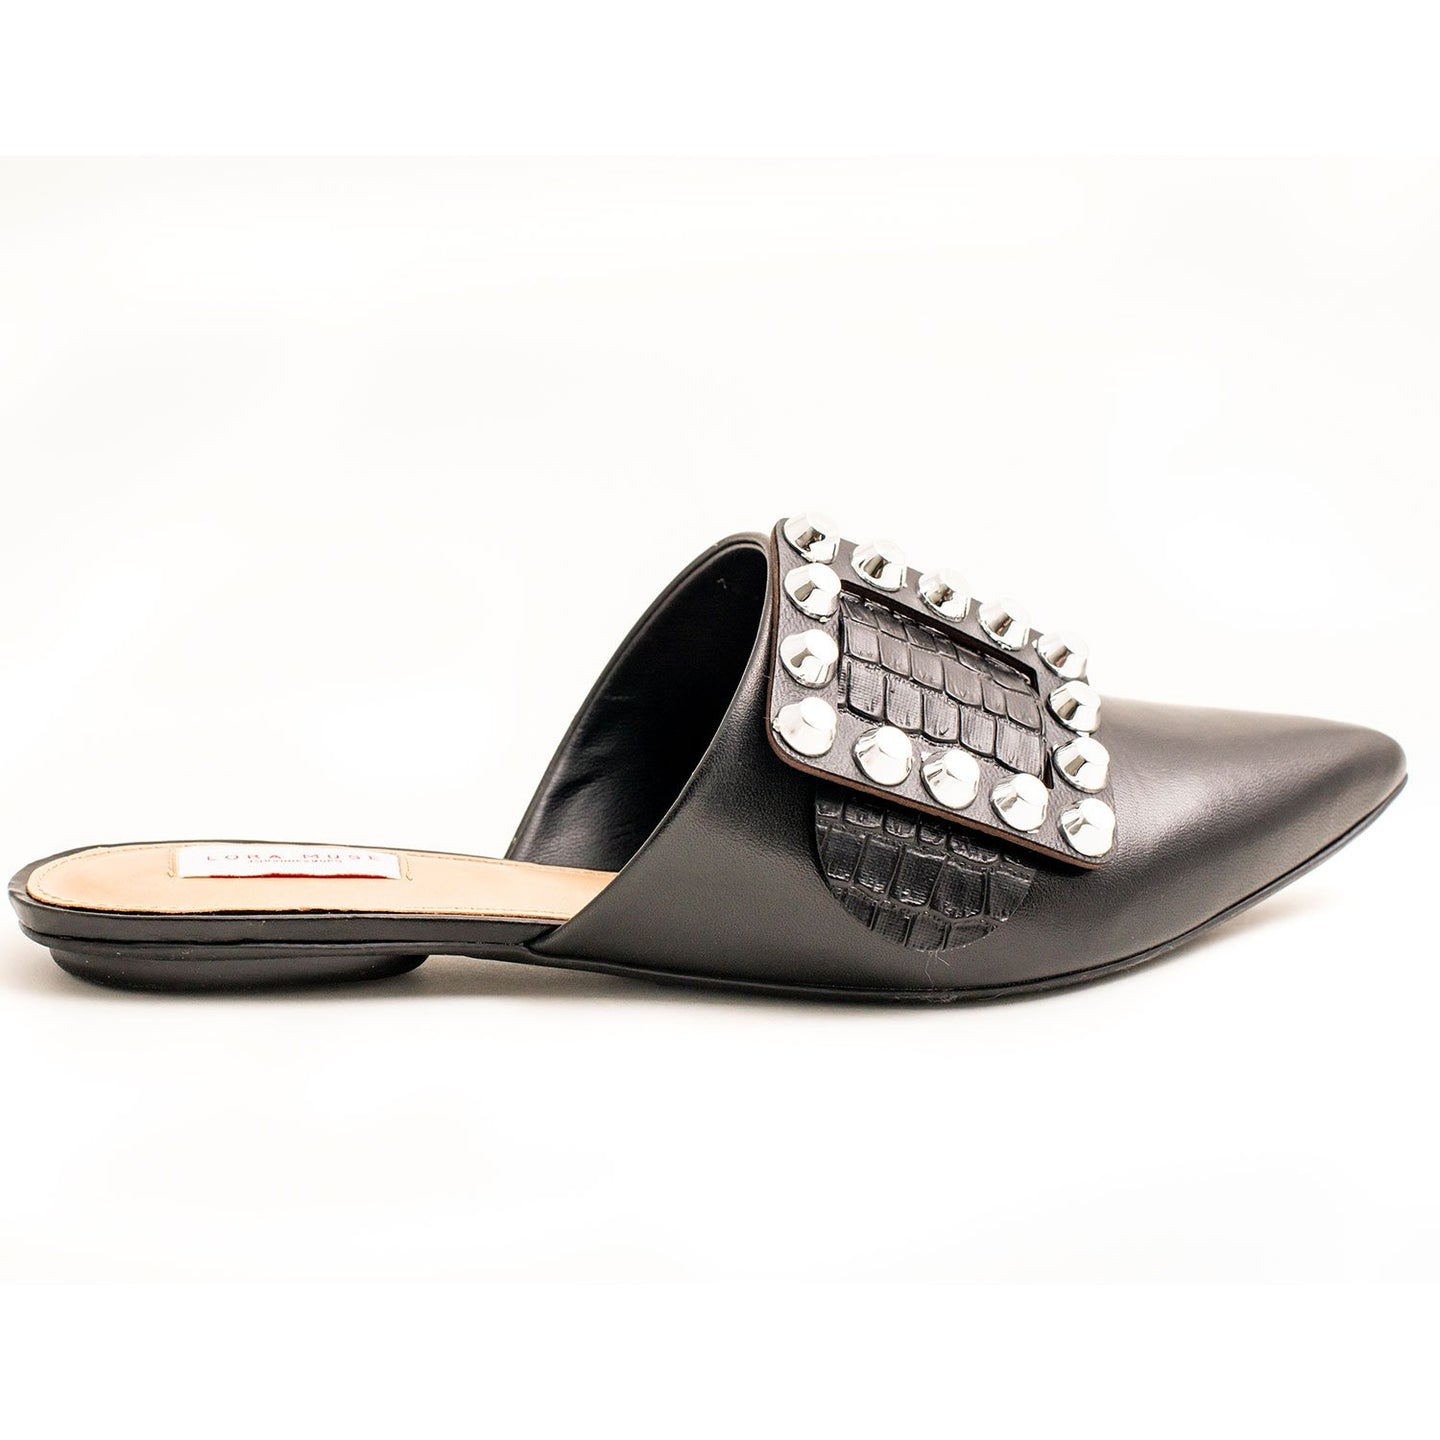 BLACK SPIKE STUD SLIDE SANDALS